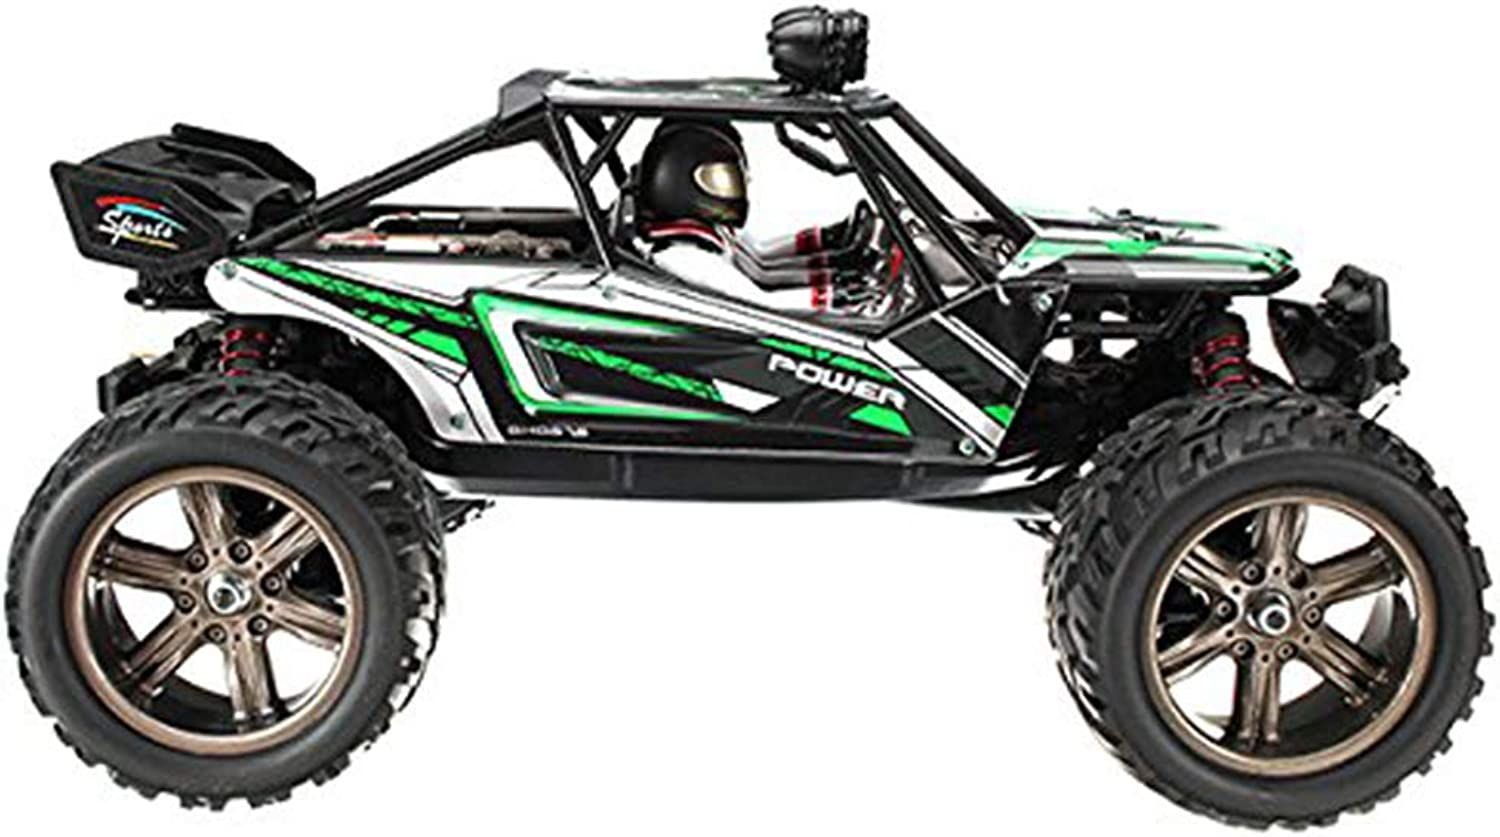 FTOPS RC Cars OffRoad Vehicles Jeep Trucks 4WD RC Trucks 1 12 Monster Trucks 2.4GHz RC Hobby Cars High Speed Racing Cars